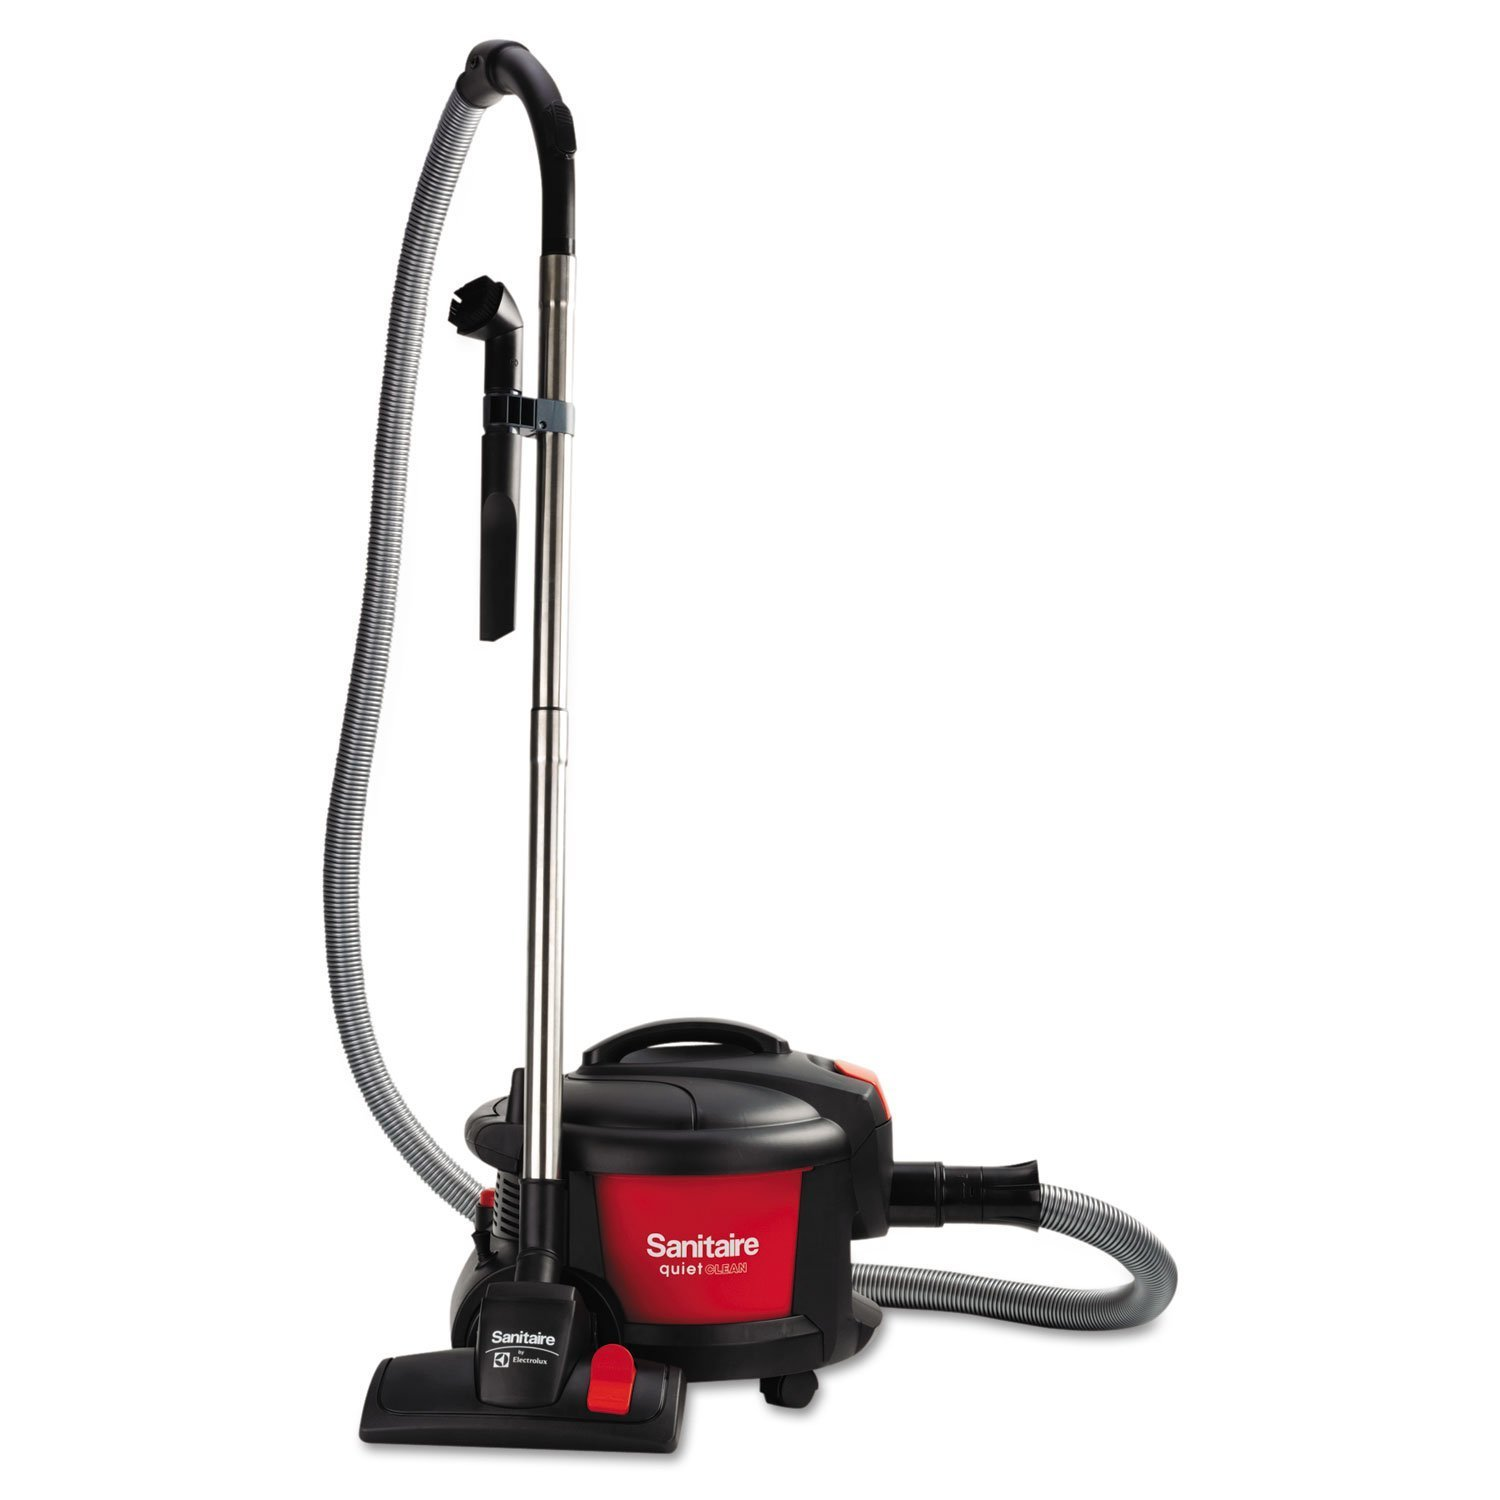 Sanitaire SC3700A Quiet Clean Canister Vacuum, Red/Black, 9.0 Amp, 11'' Cleaning Path. by Sanitaire